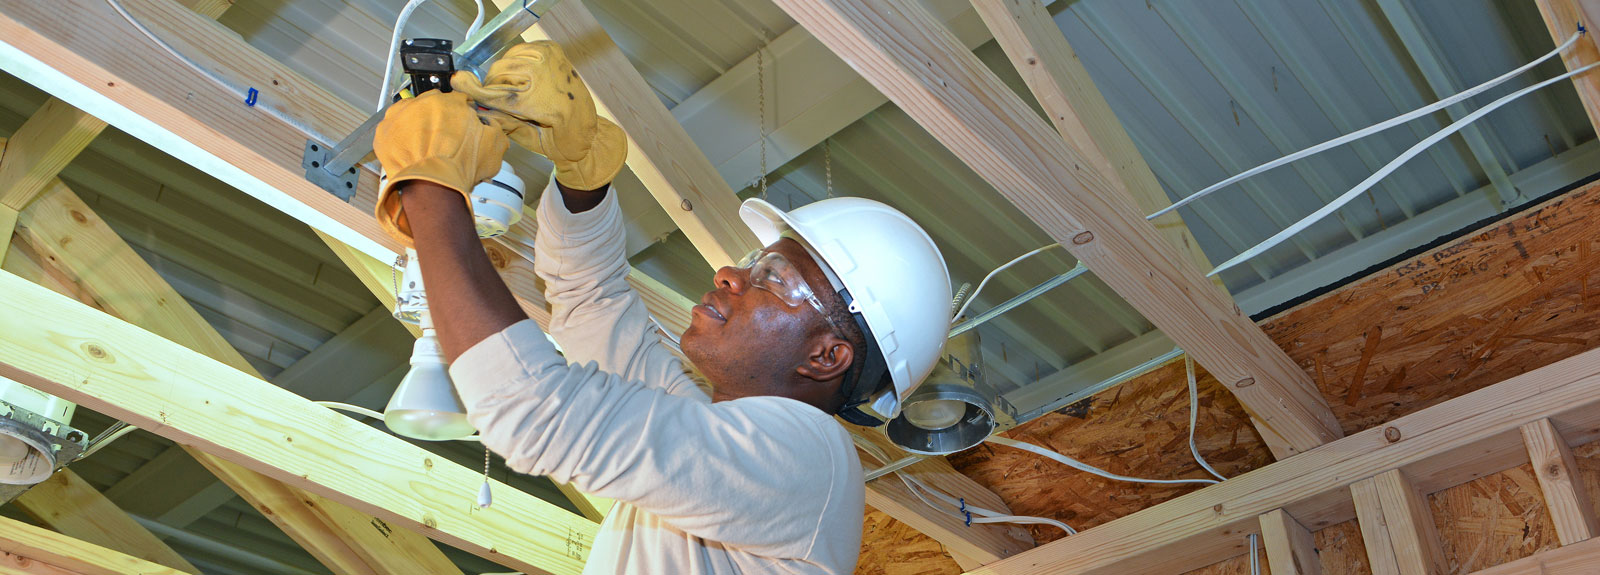 MTTI Student Installing Electrical Lighting On Overhead Framing In House Module